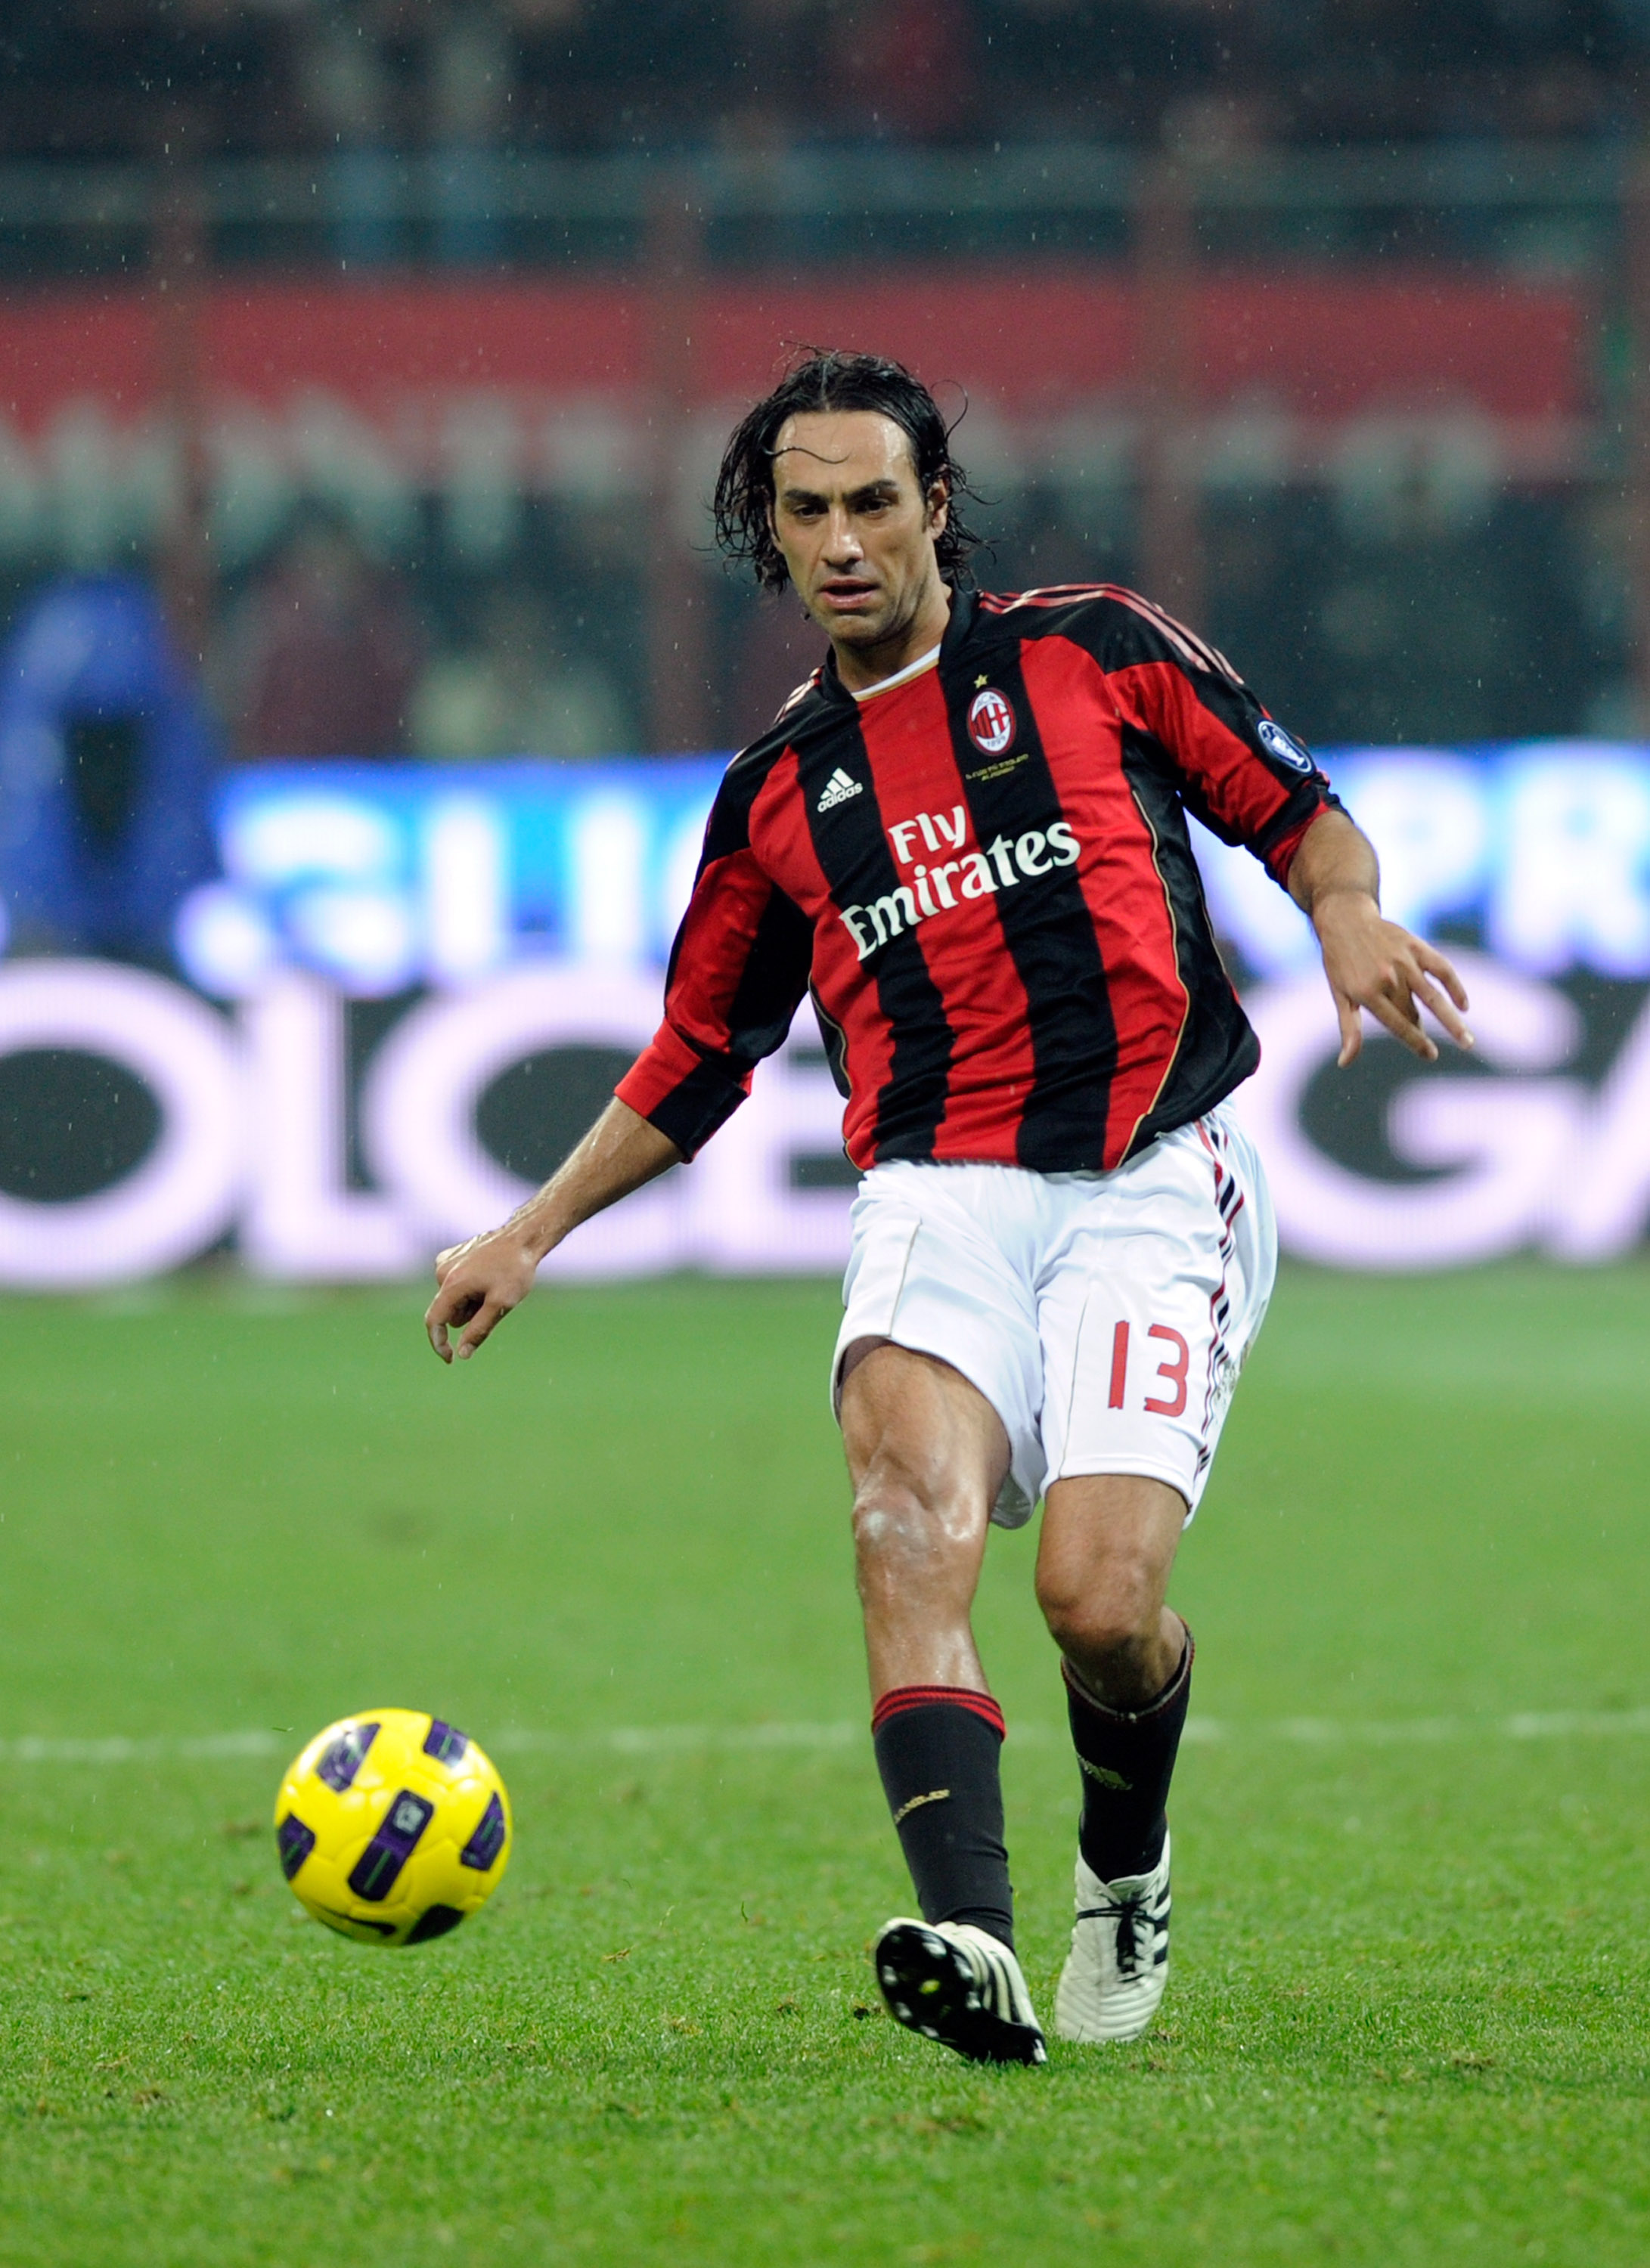 MILAN, ITALY - OCTOBER 30:  Alessandro Nesta of AC Milan during the Serie A match between Milan and Juventus at Stadio Giuseppe Meazza on October 30, 2010 in Milan, Italy.  (Photo by Claudio Villa/Getty Images)